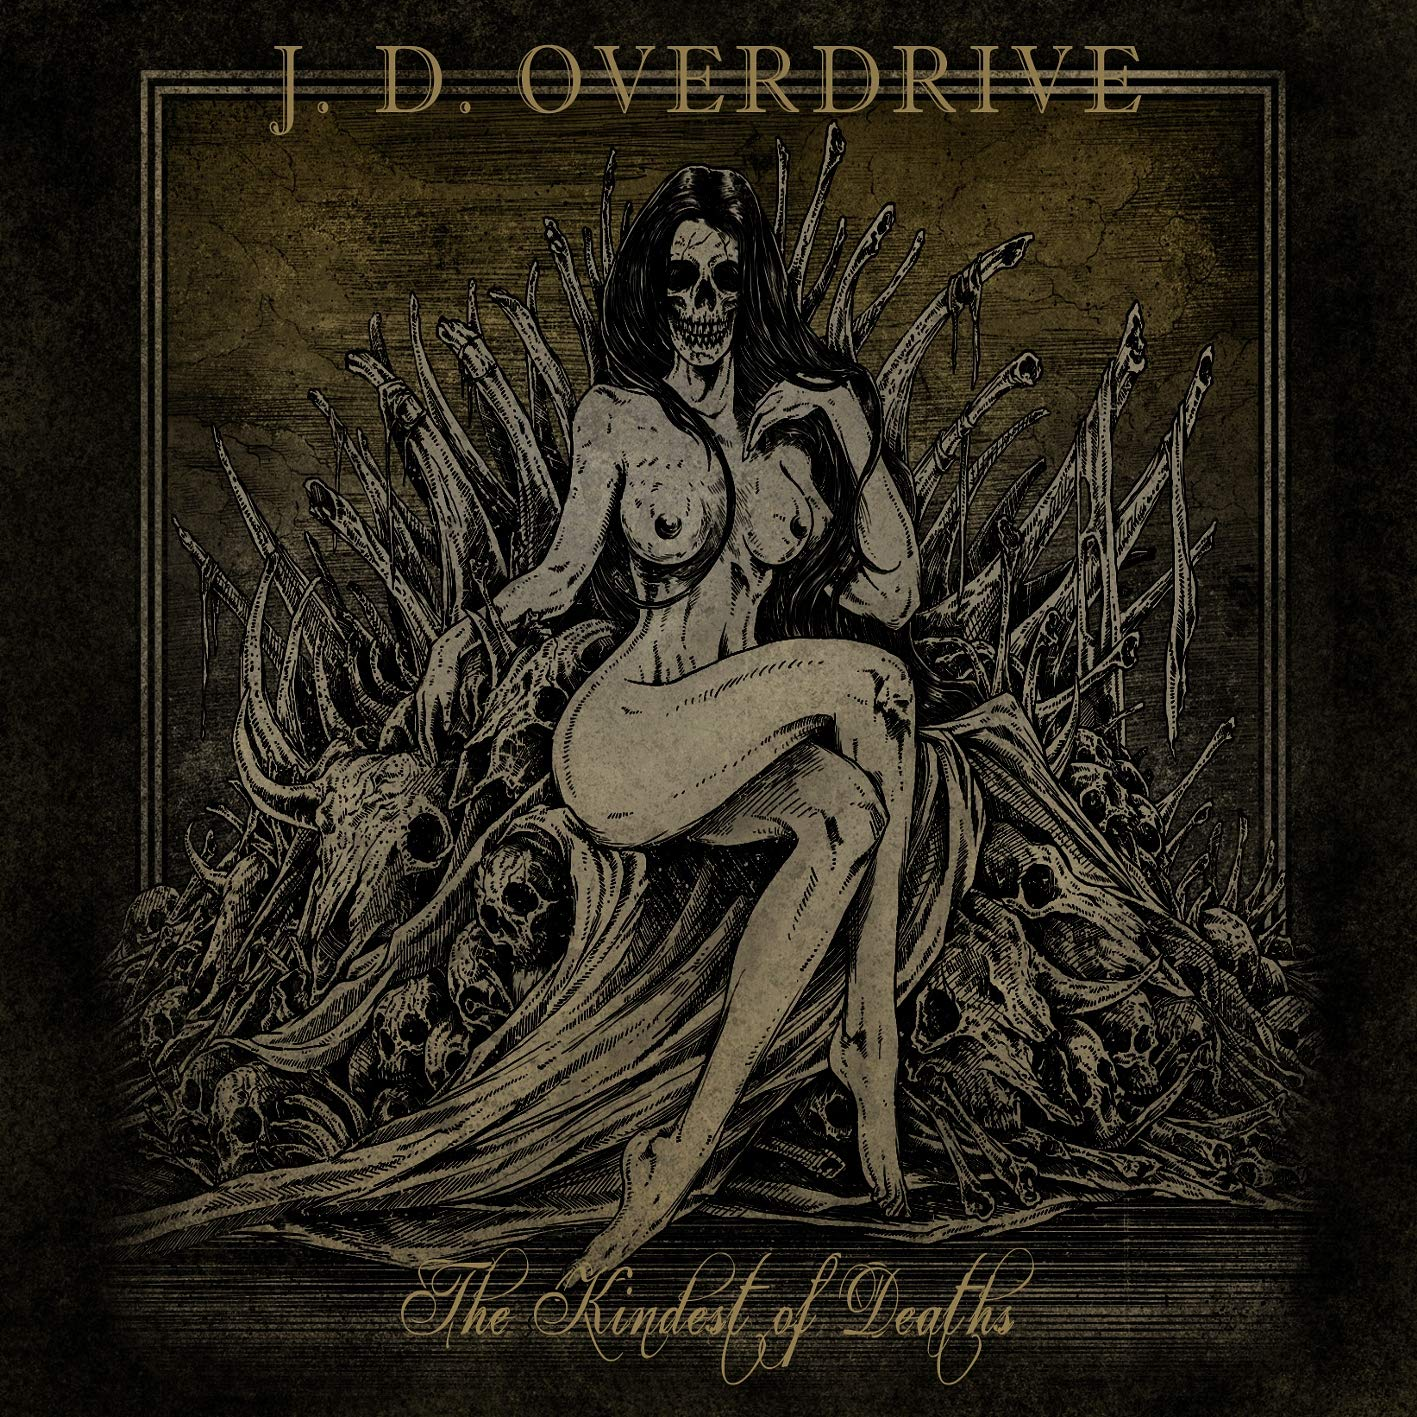 J. D. Overdrive-The Kindest Of Deaths-(MMP CD 0749 DG)-CD-FLAC-2015-WRE